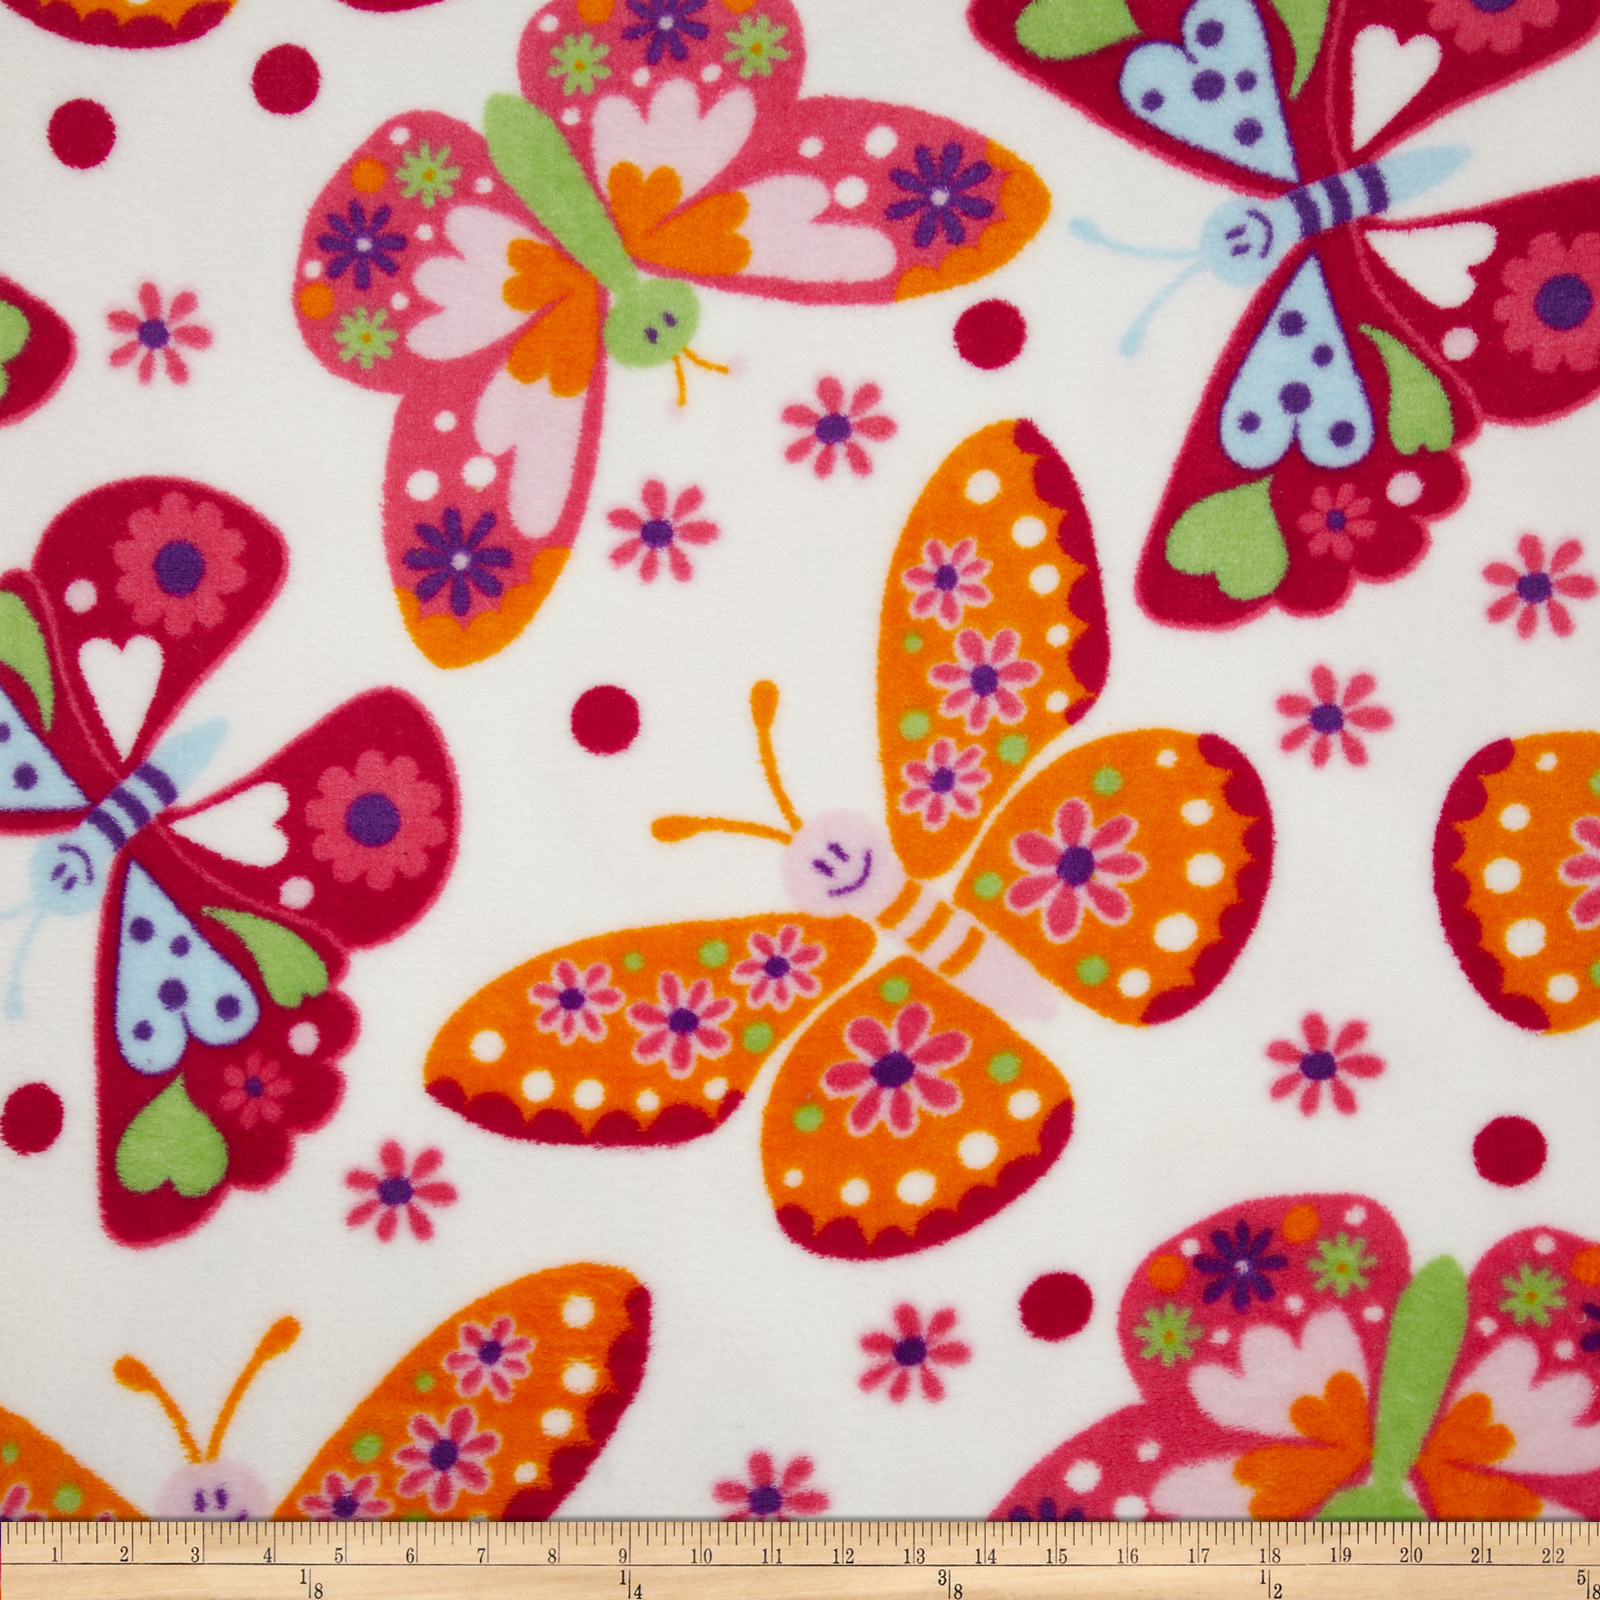 Plush Coral Fleece Tossed Butterflies White Fabric by Eugene in USA